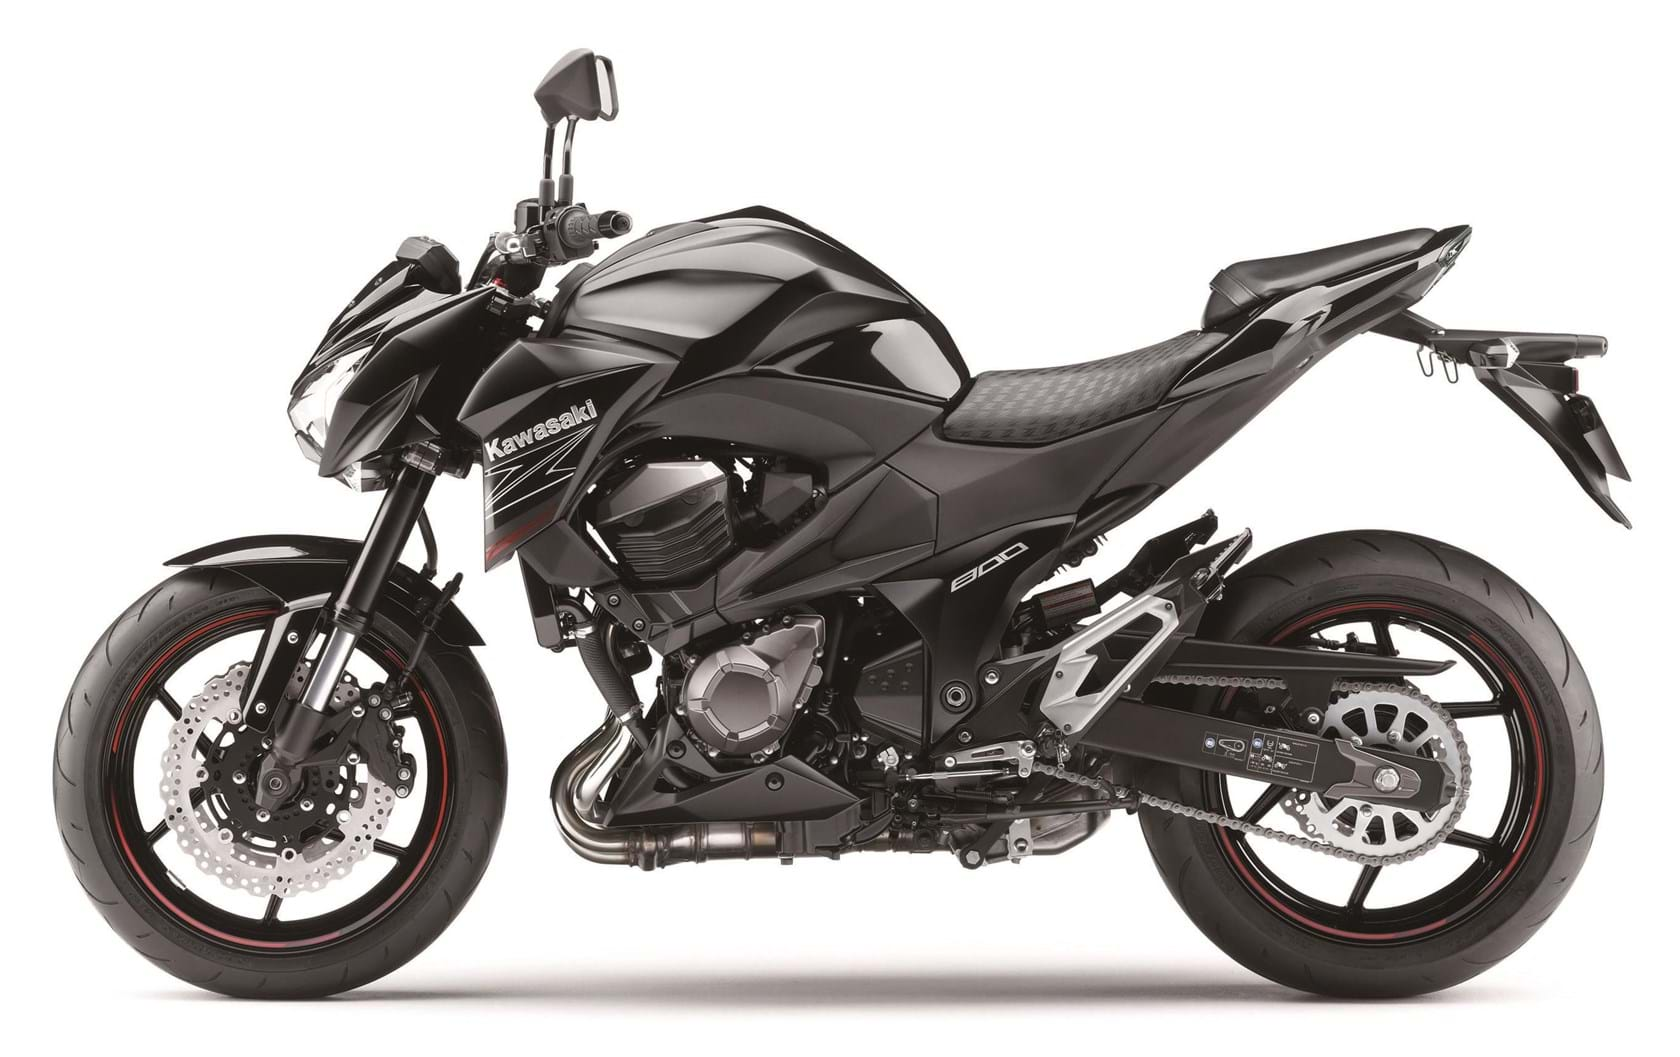 Kawasaki Z800 O For Sale Price Guide The Bike Market